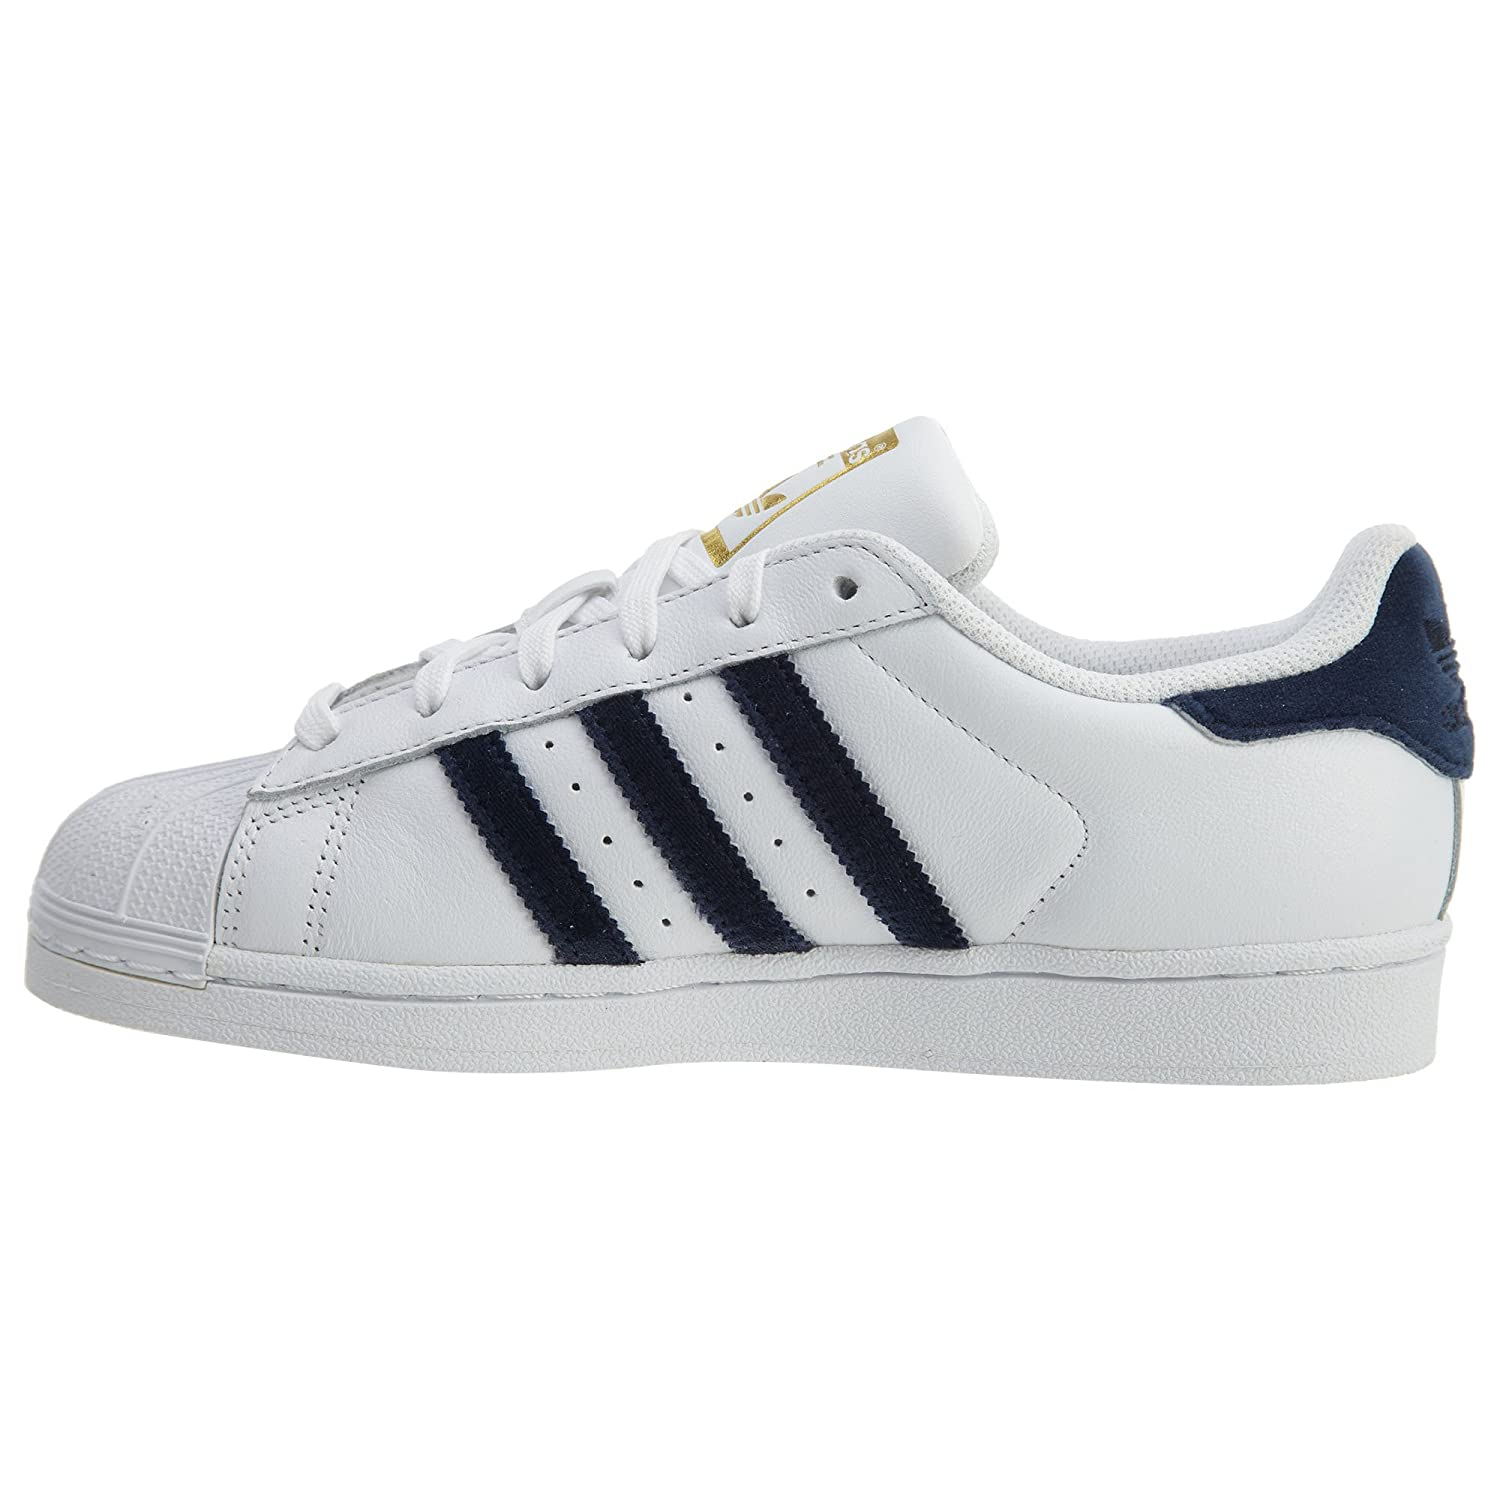 Adidas-Superstar-Women-039-s-Fashion-Casual-Sneakers-Athletic-Shoes-Originals thumbnail 28